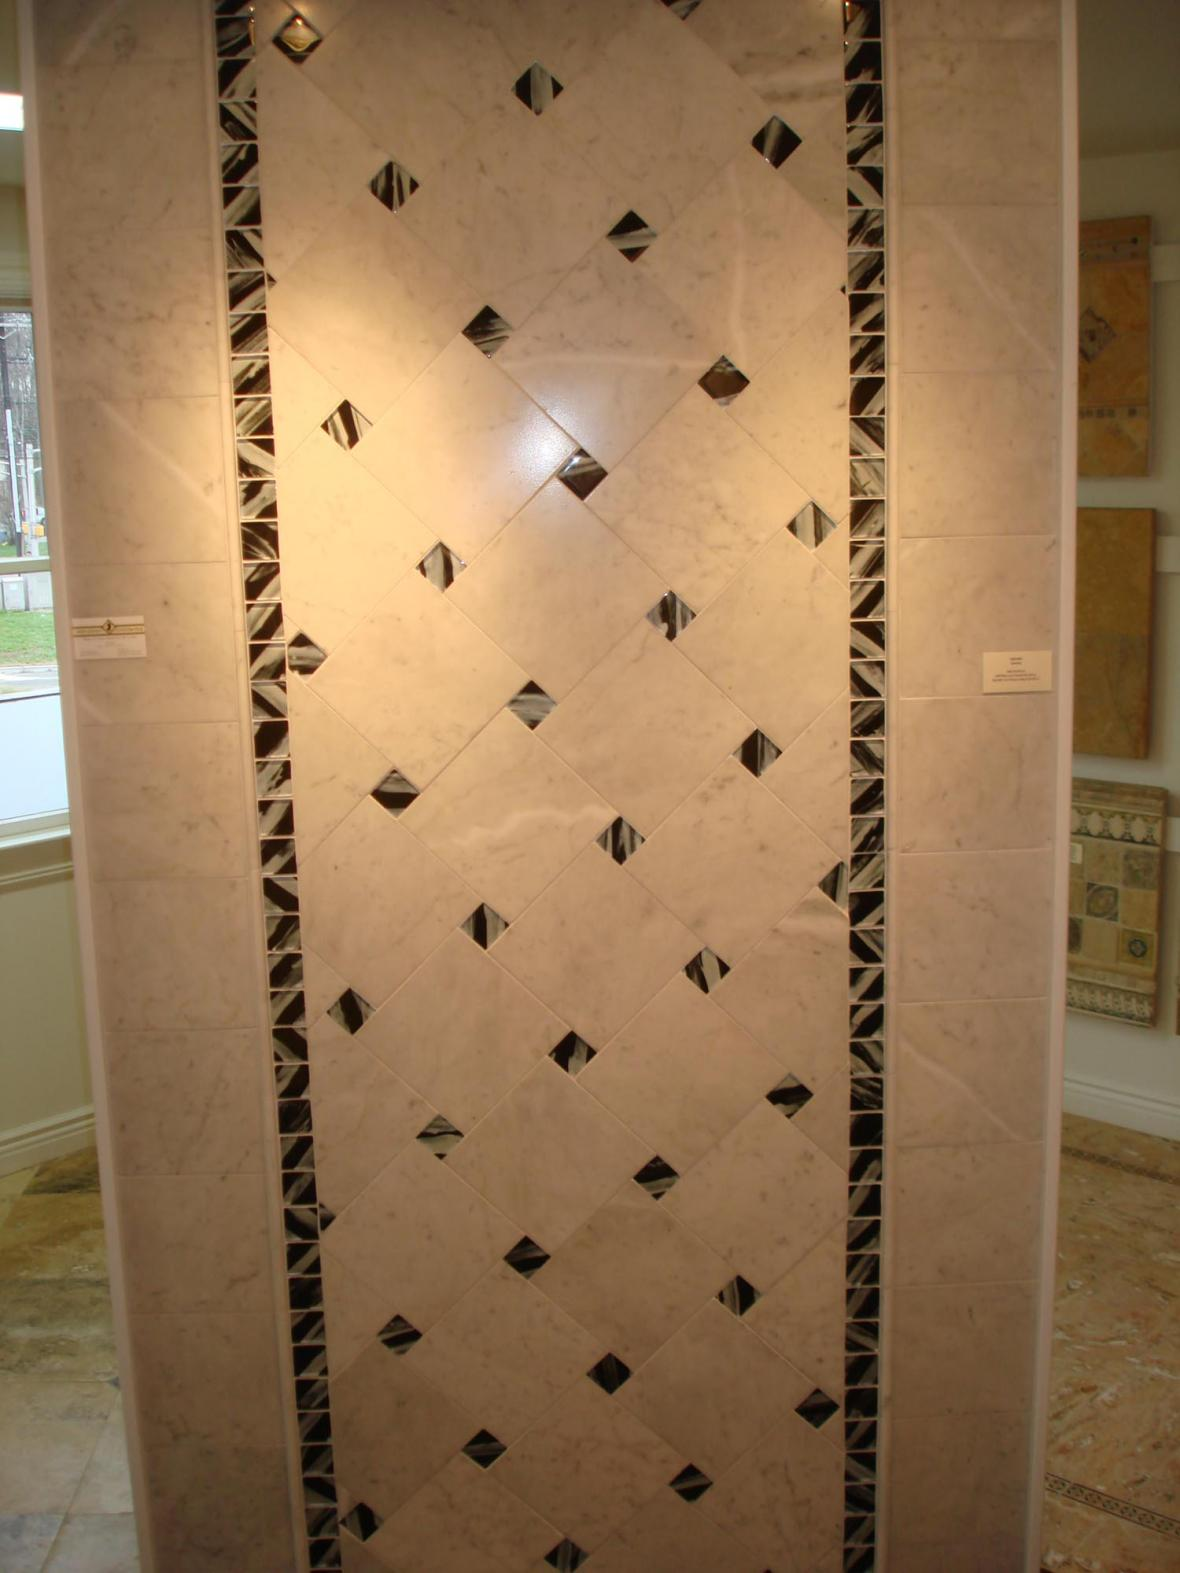 Marble and glass wall display